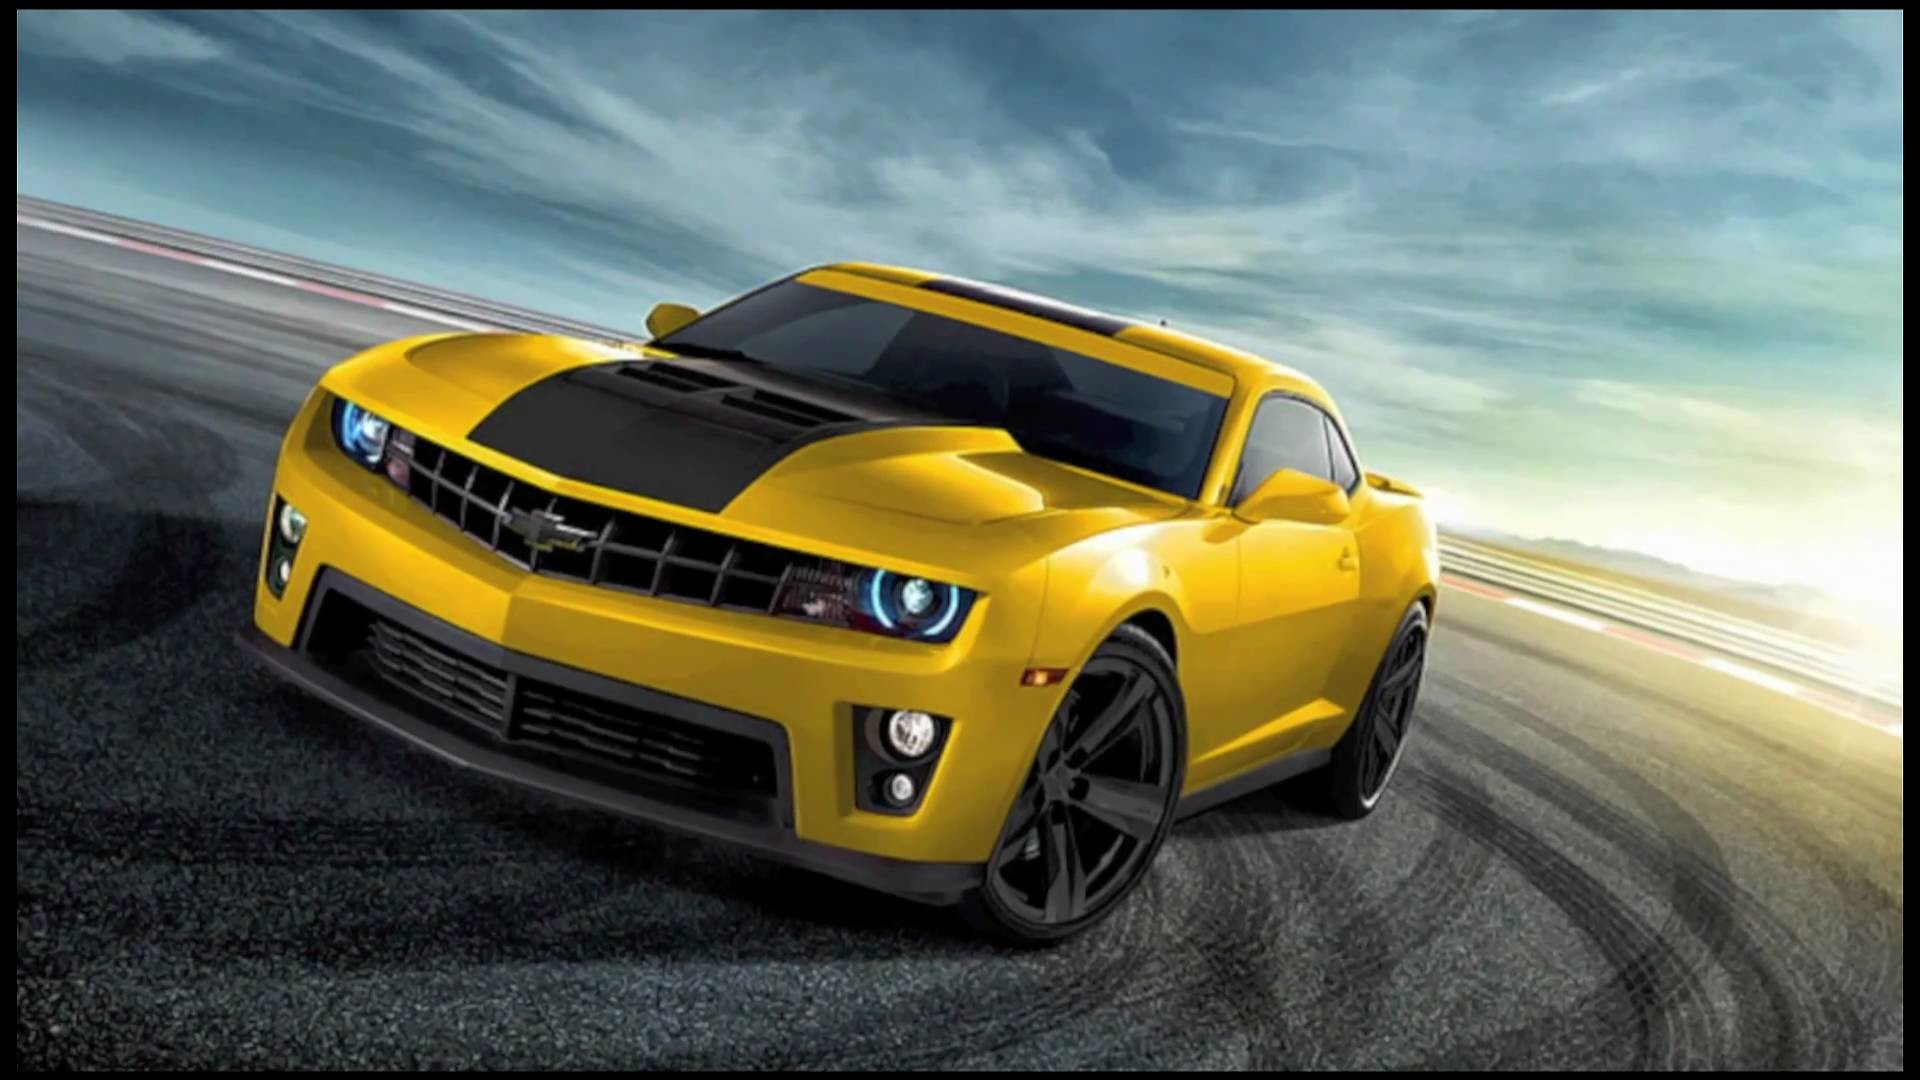 1920x1080 Chevrolet Camaro SS HD wallpaper Download Chevrolet Camaro SS